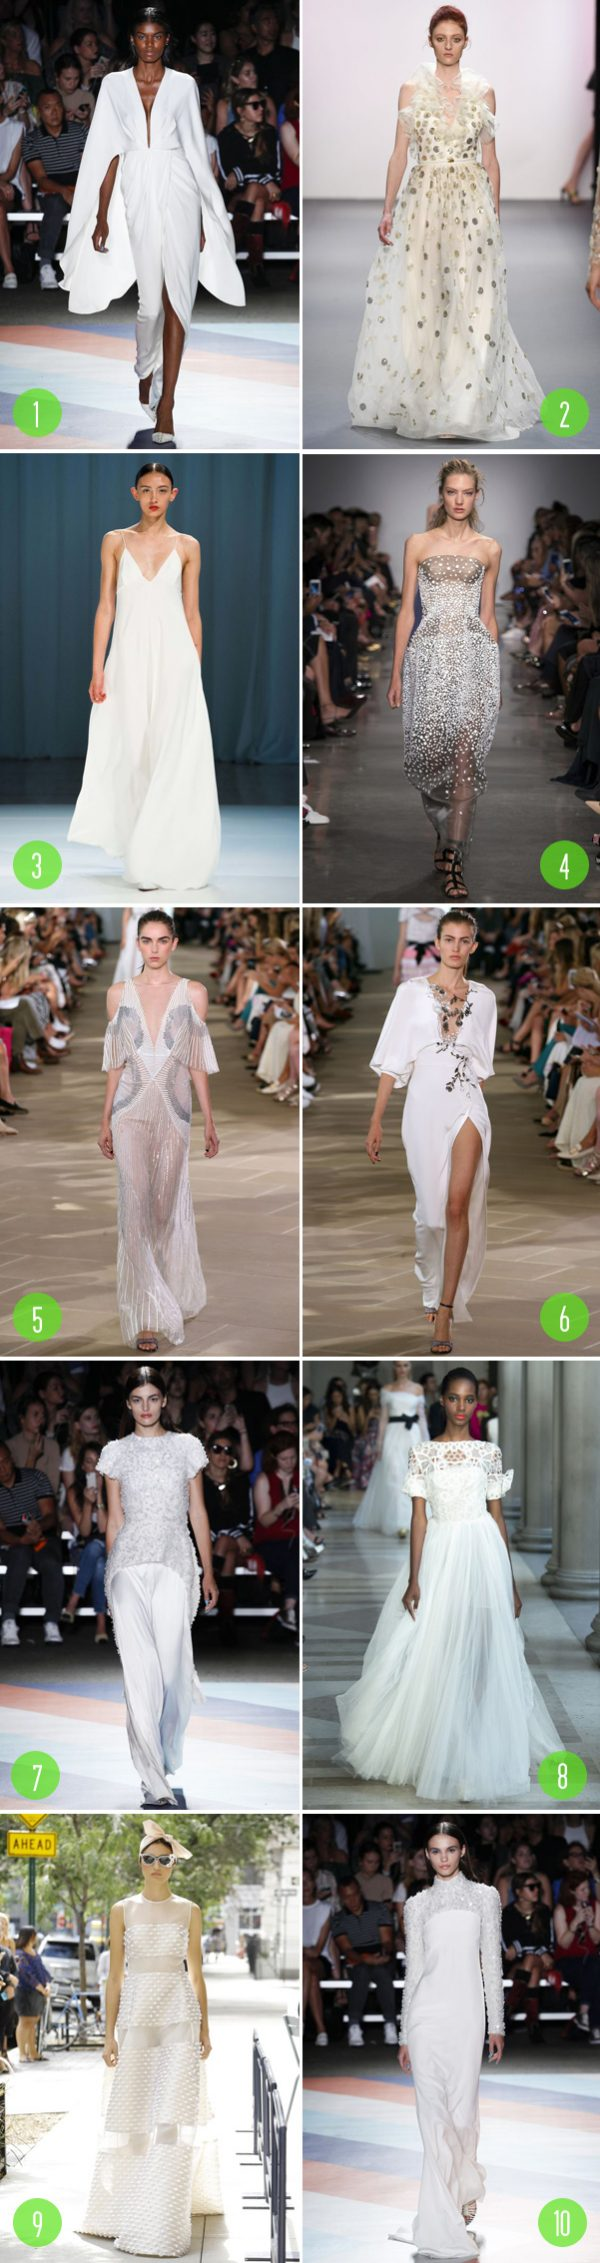 Top 10: NYFW bridal inspirations 4